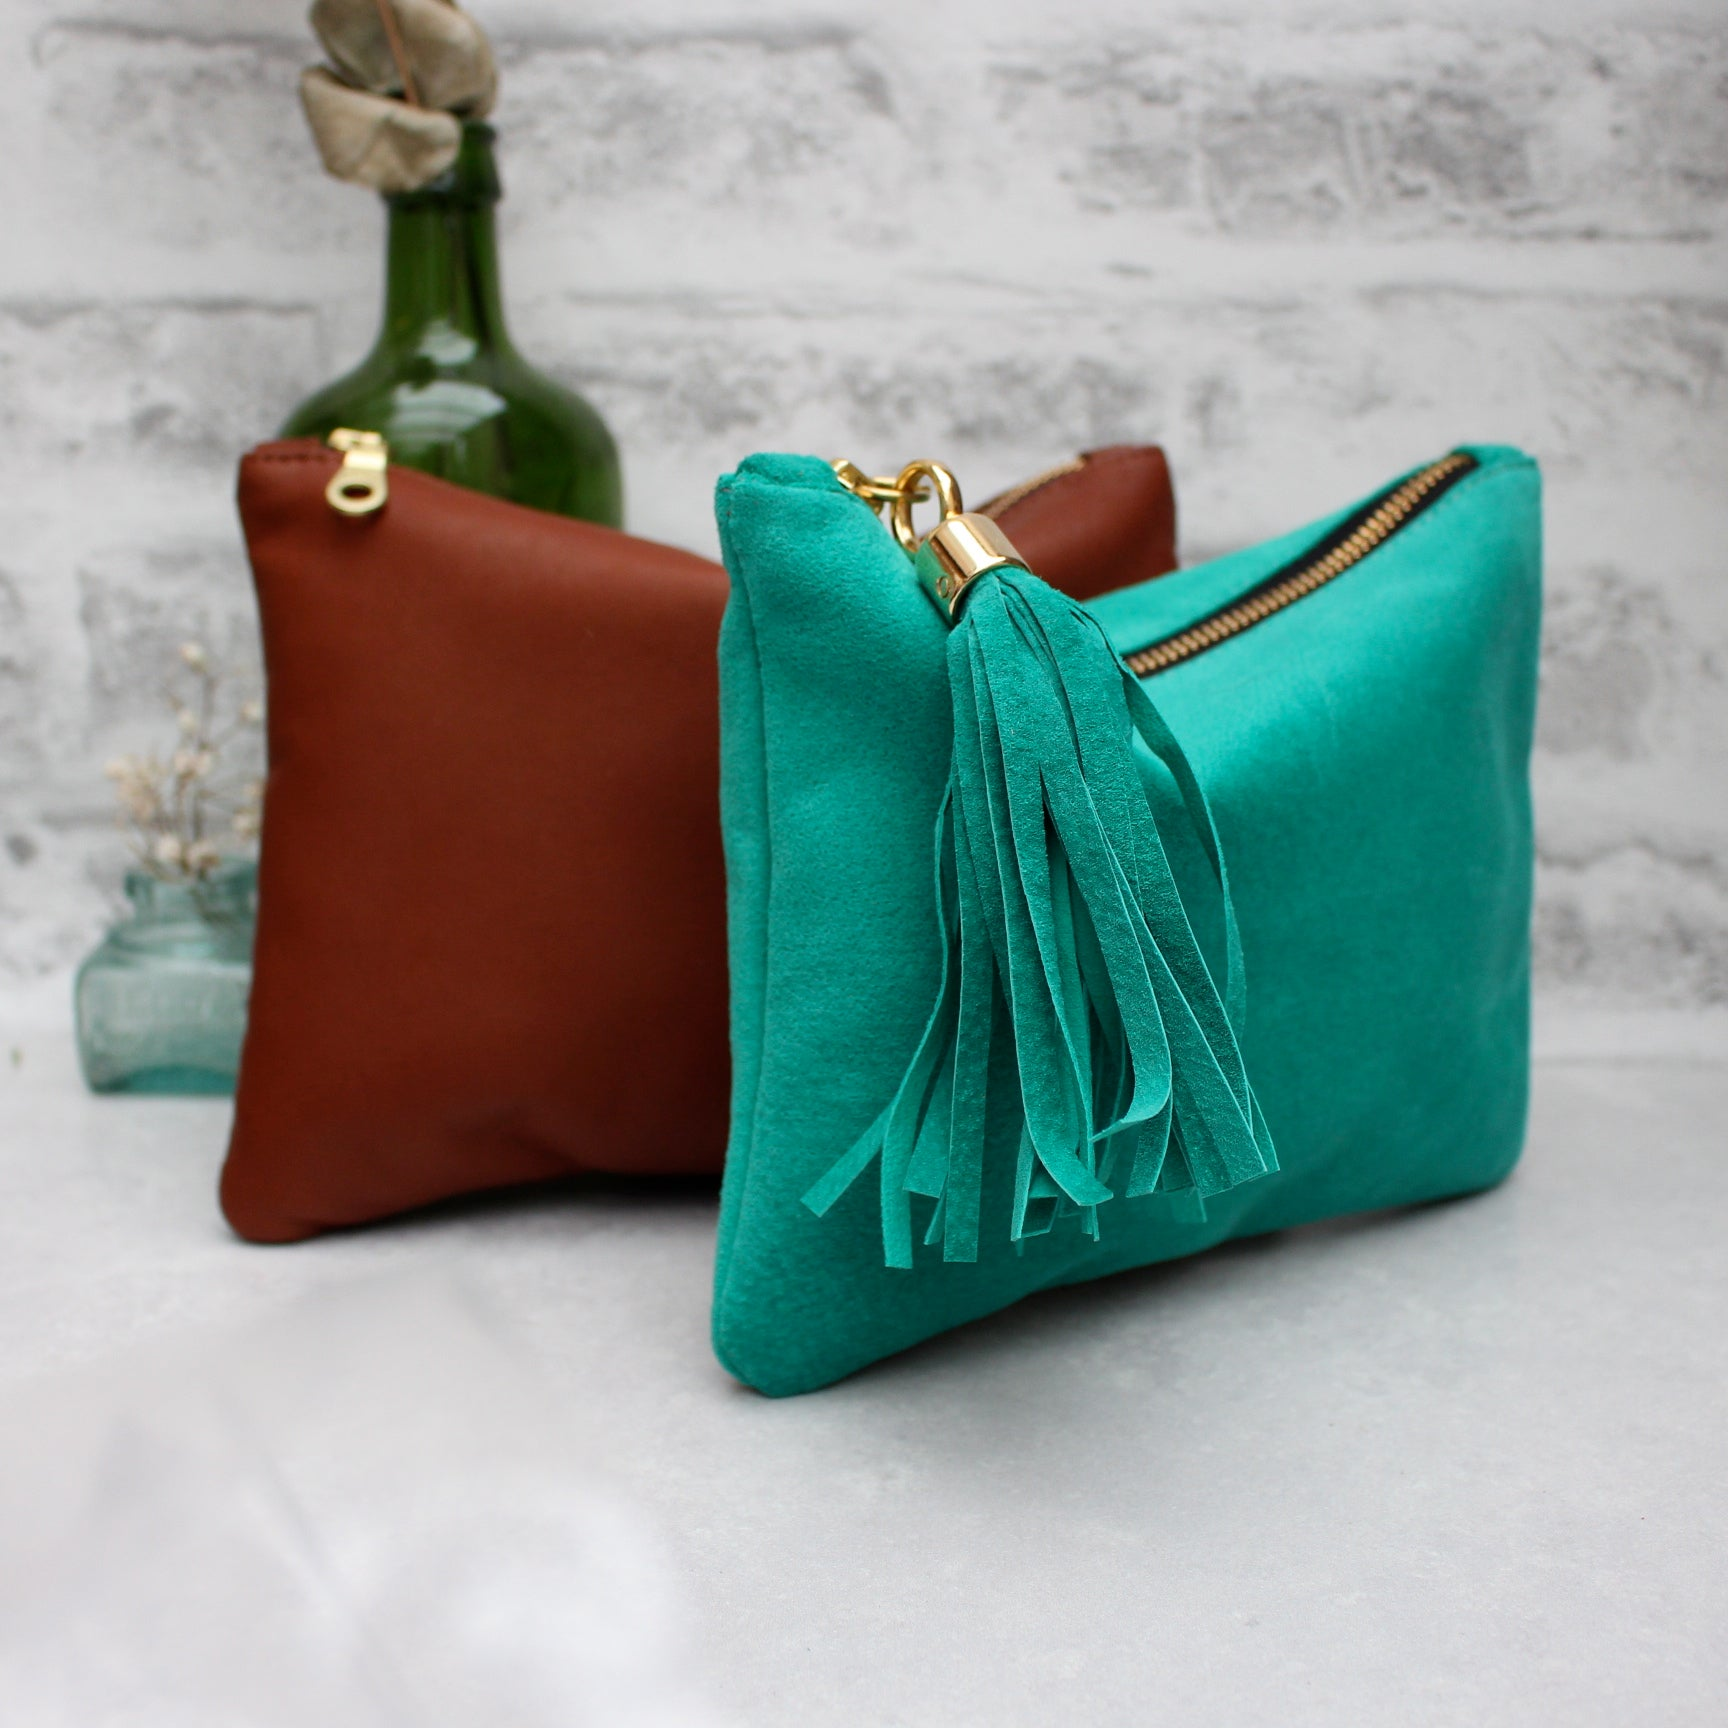 Betsy Mini - green suede